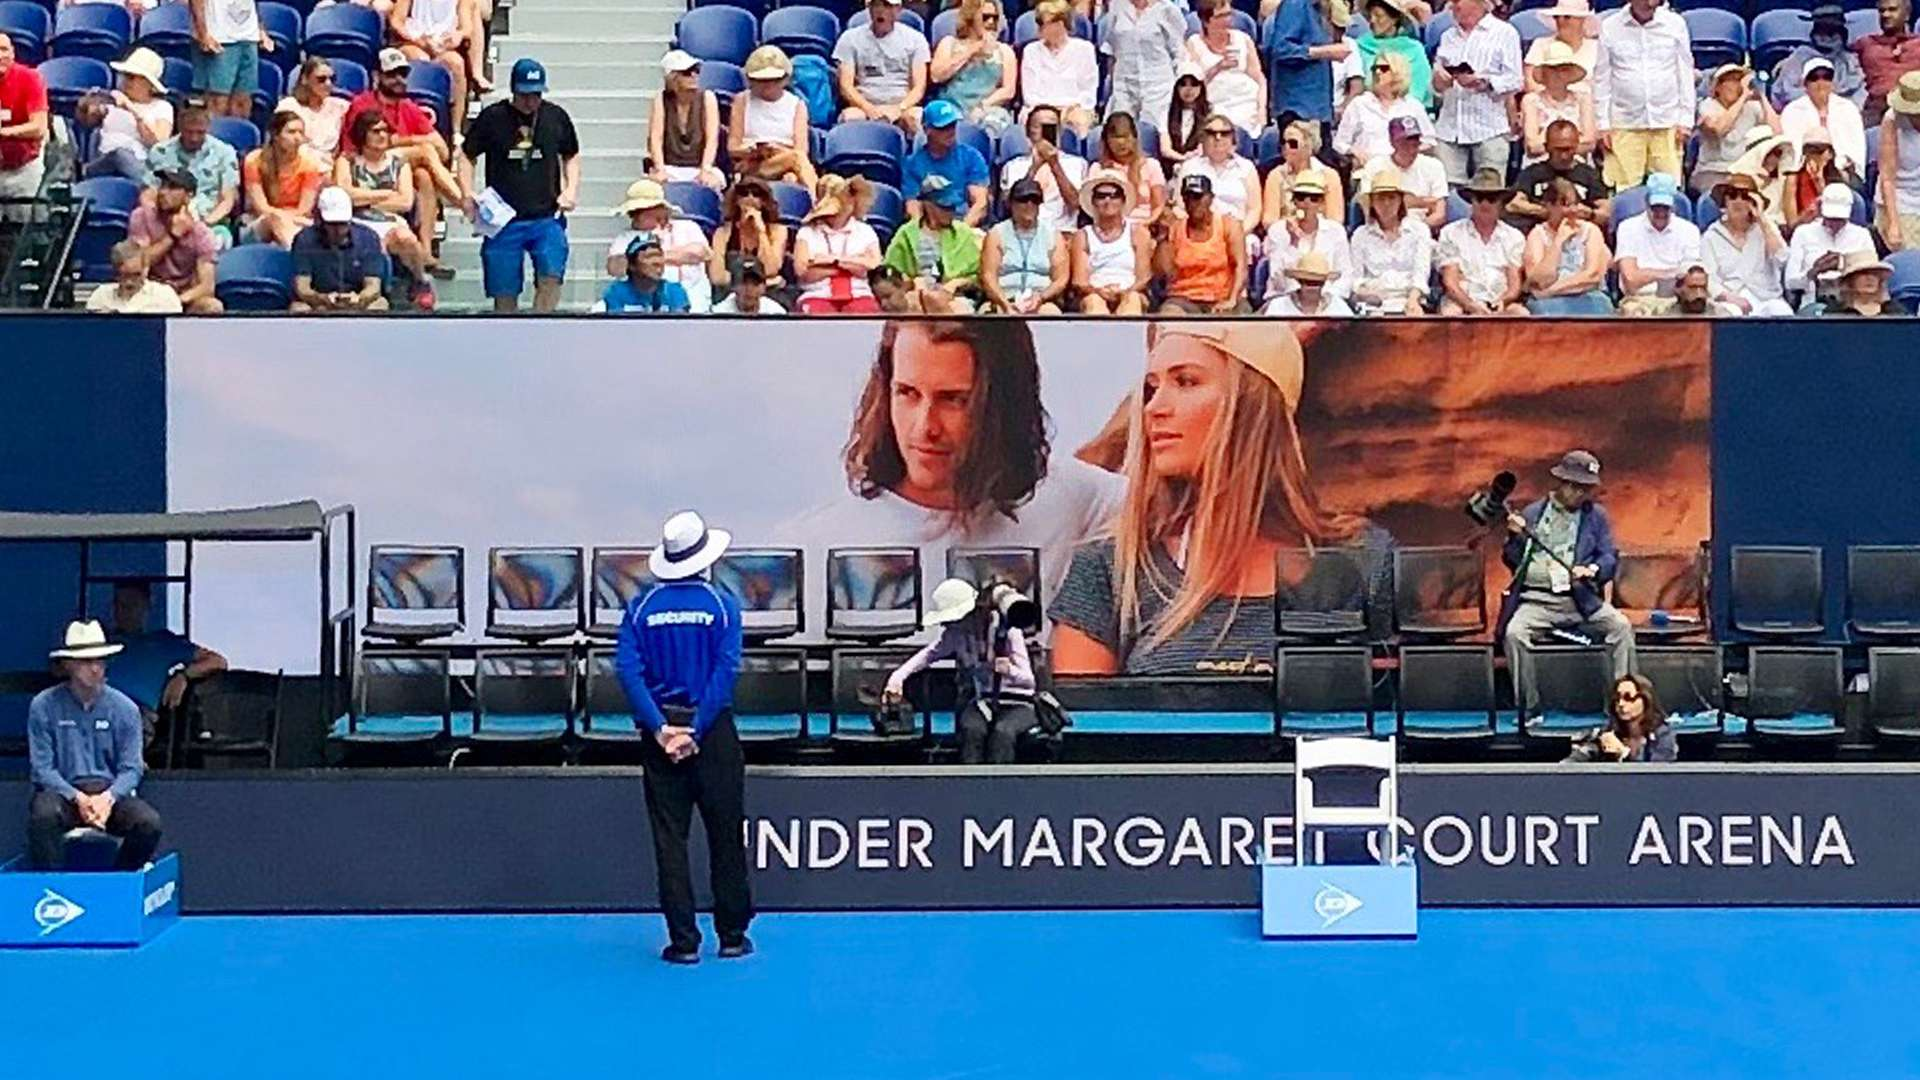 Australian Open 2019 Fashion Images Showcased Centre Court